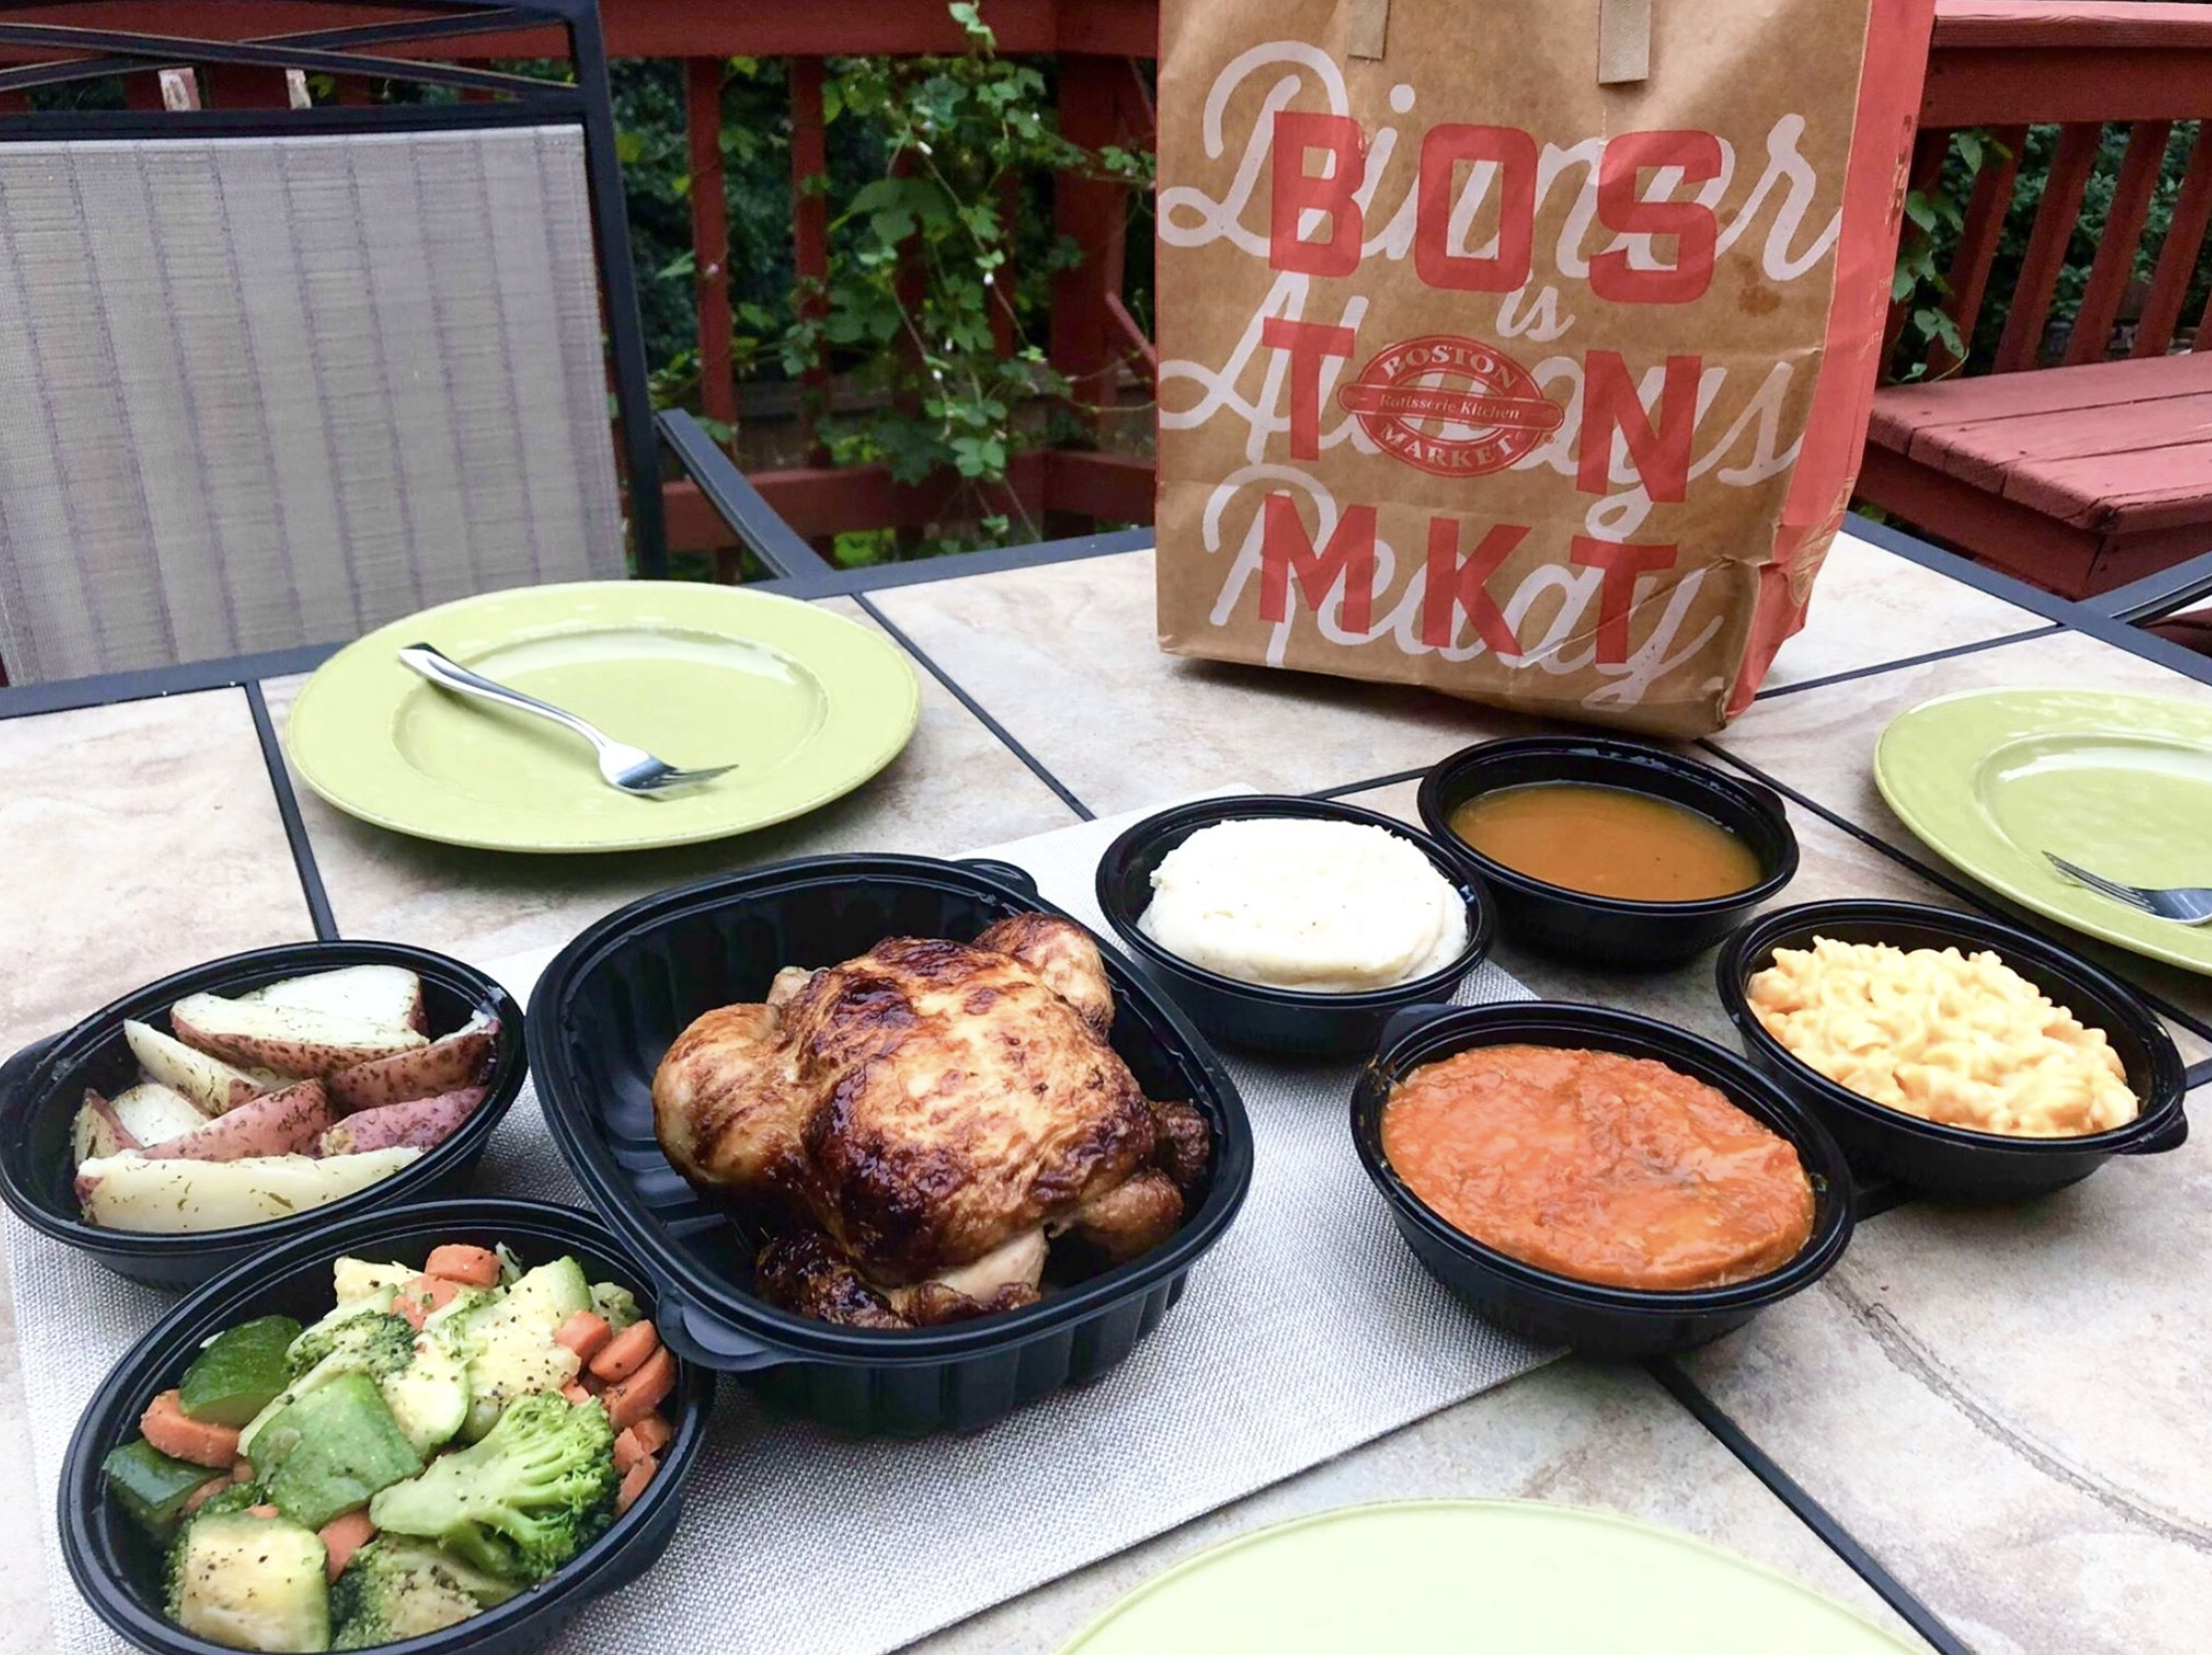 Back-to-school transition is easier with Boston Market Family Meals! Read our full review of Boston Market family Meals! #ad #BTSBostonMarket Full story @ https://bit.ly/2m00ECS